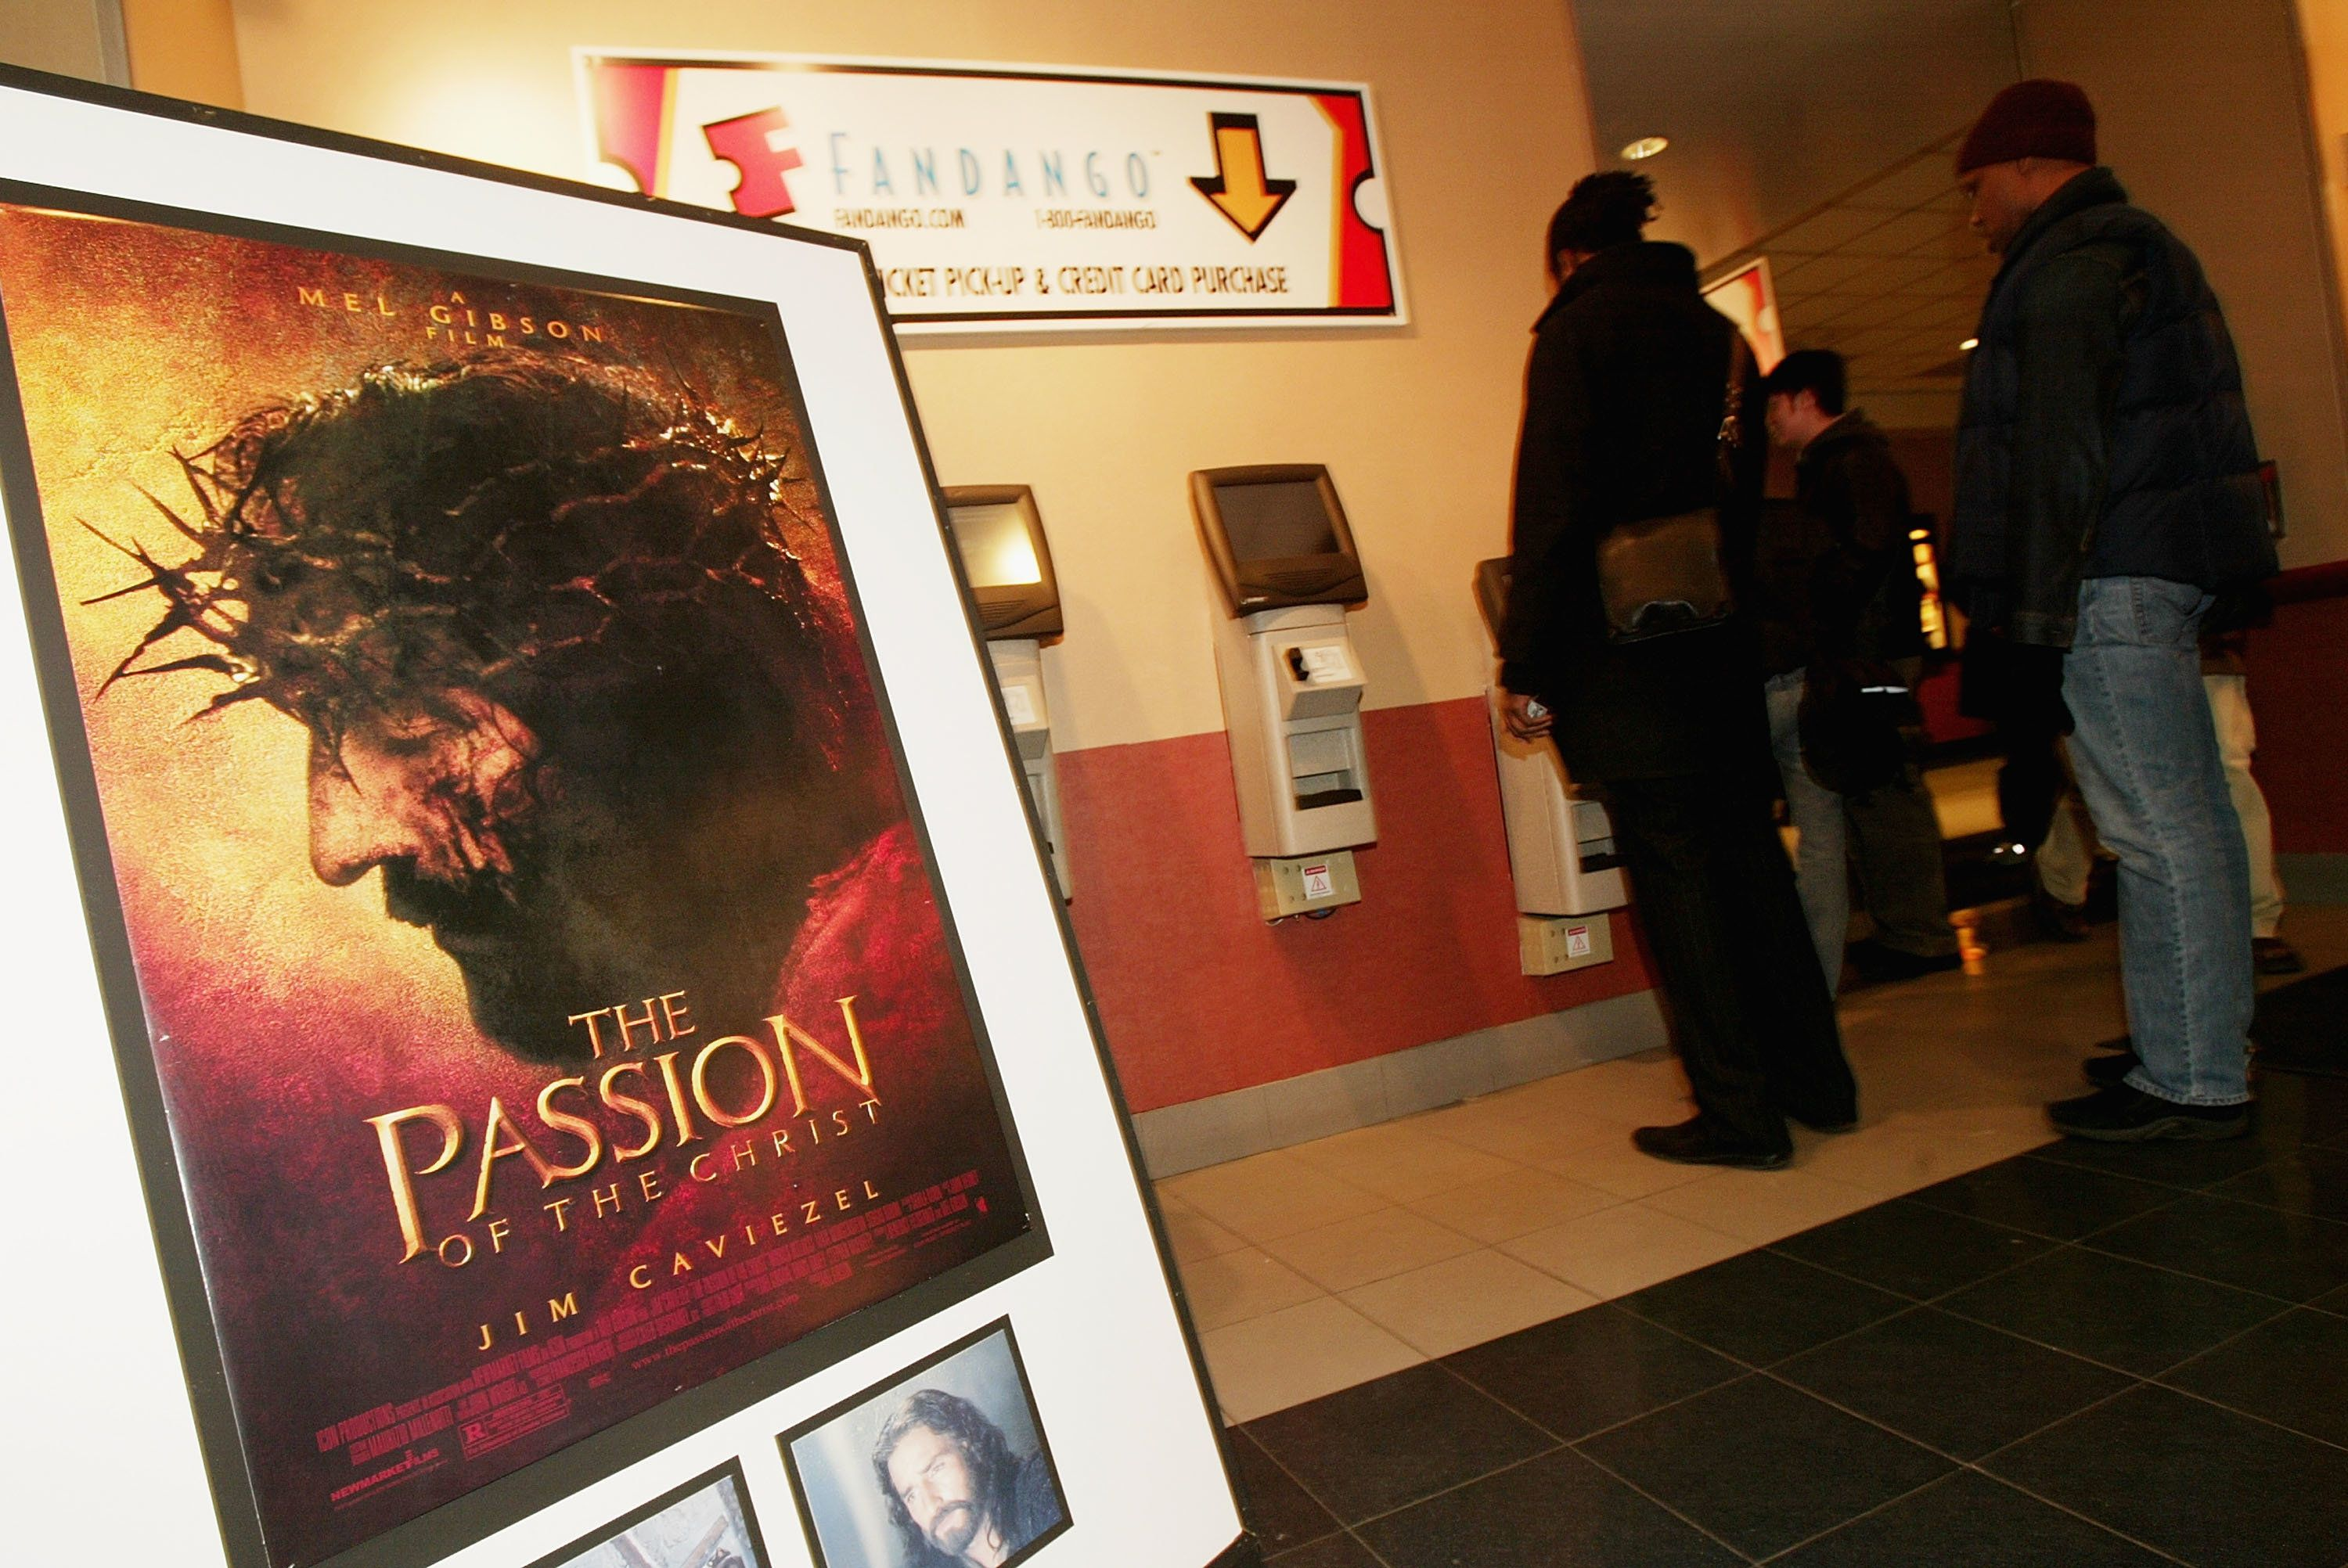 Mel Gibson's 'The Passion of the Christ' opens at the Regal Cinemas 14 February 24, 2004 in New York City.